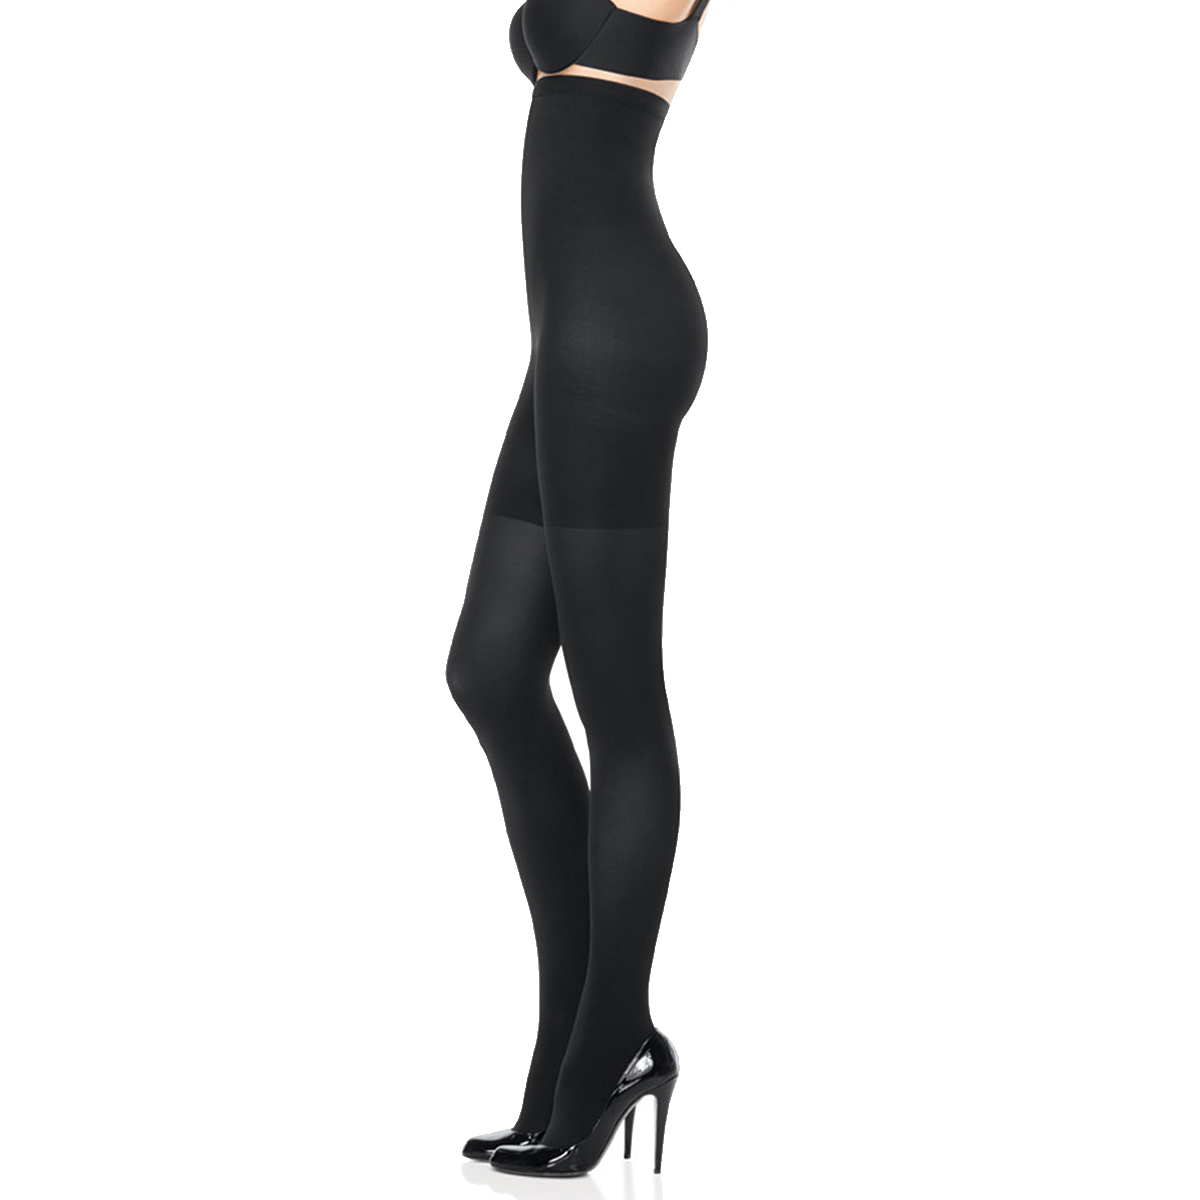 Spanx Black Opaque Women/'s Tight End All Day Bodyshaping Slimming Sleek Tights